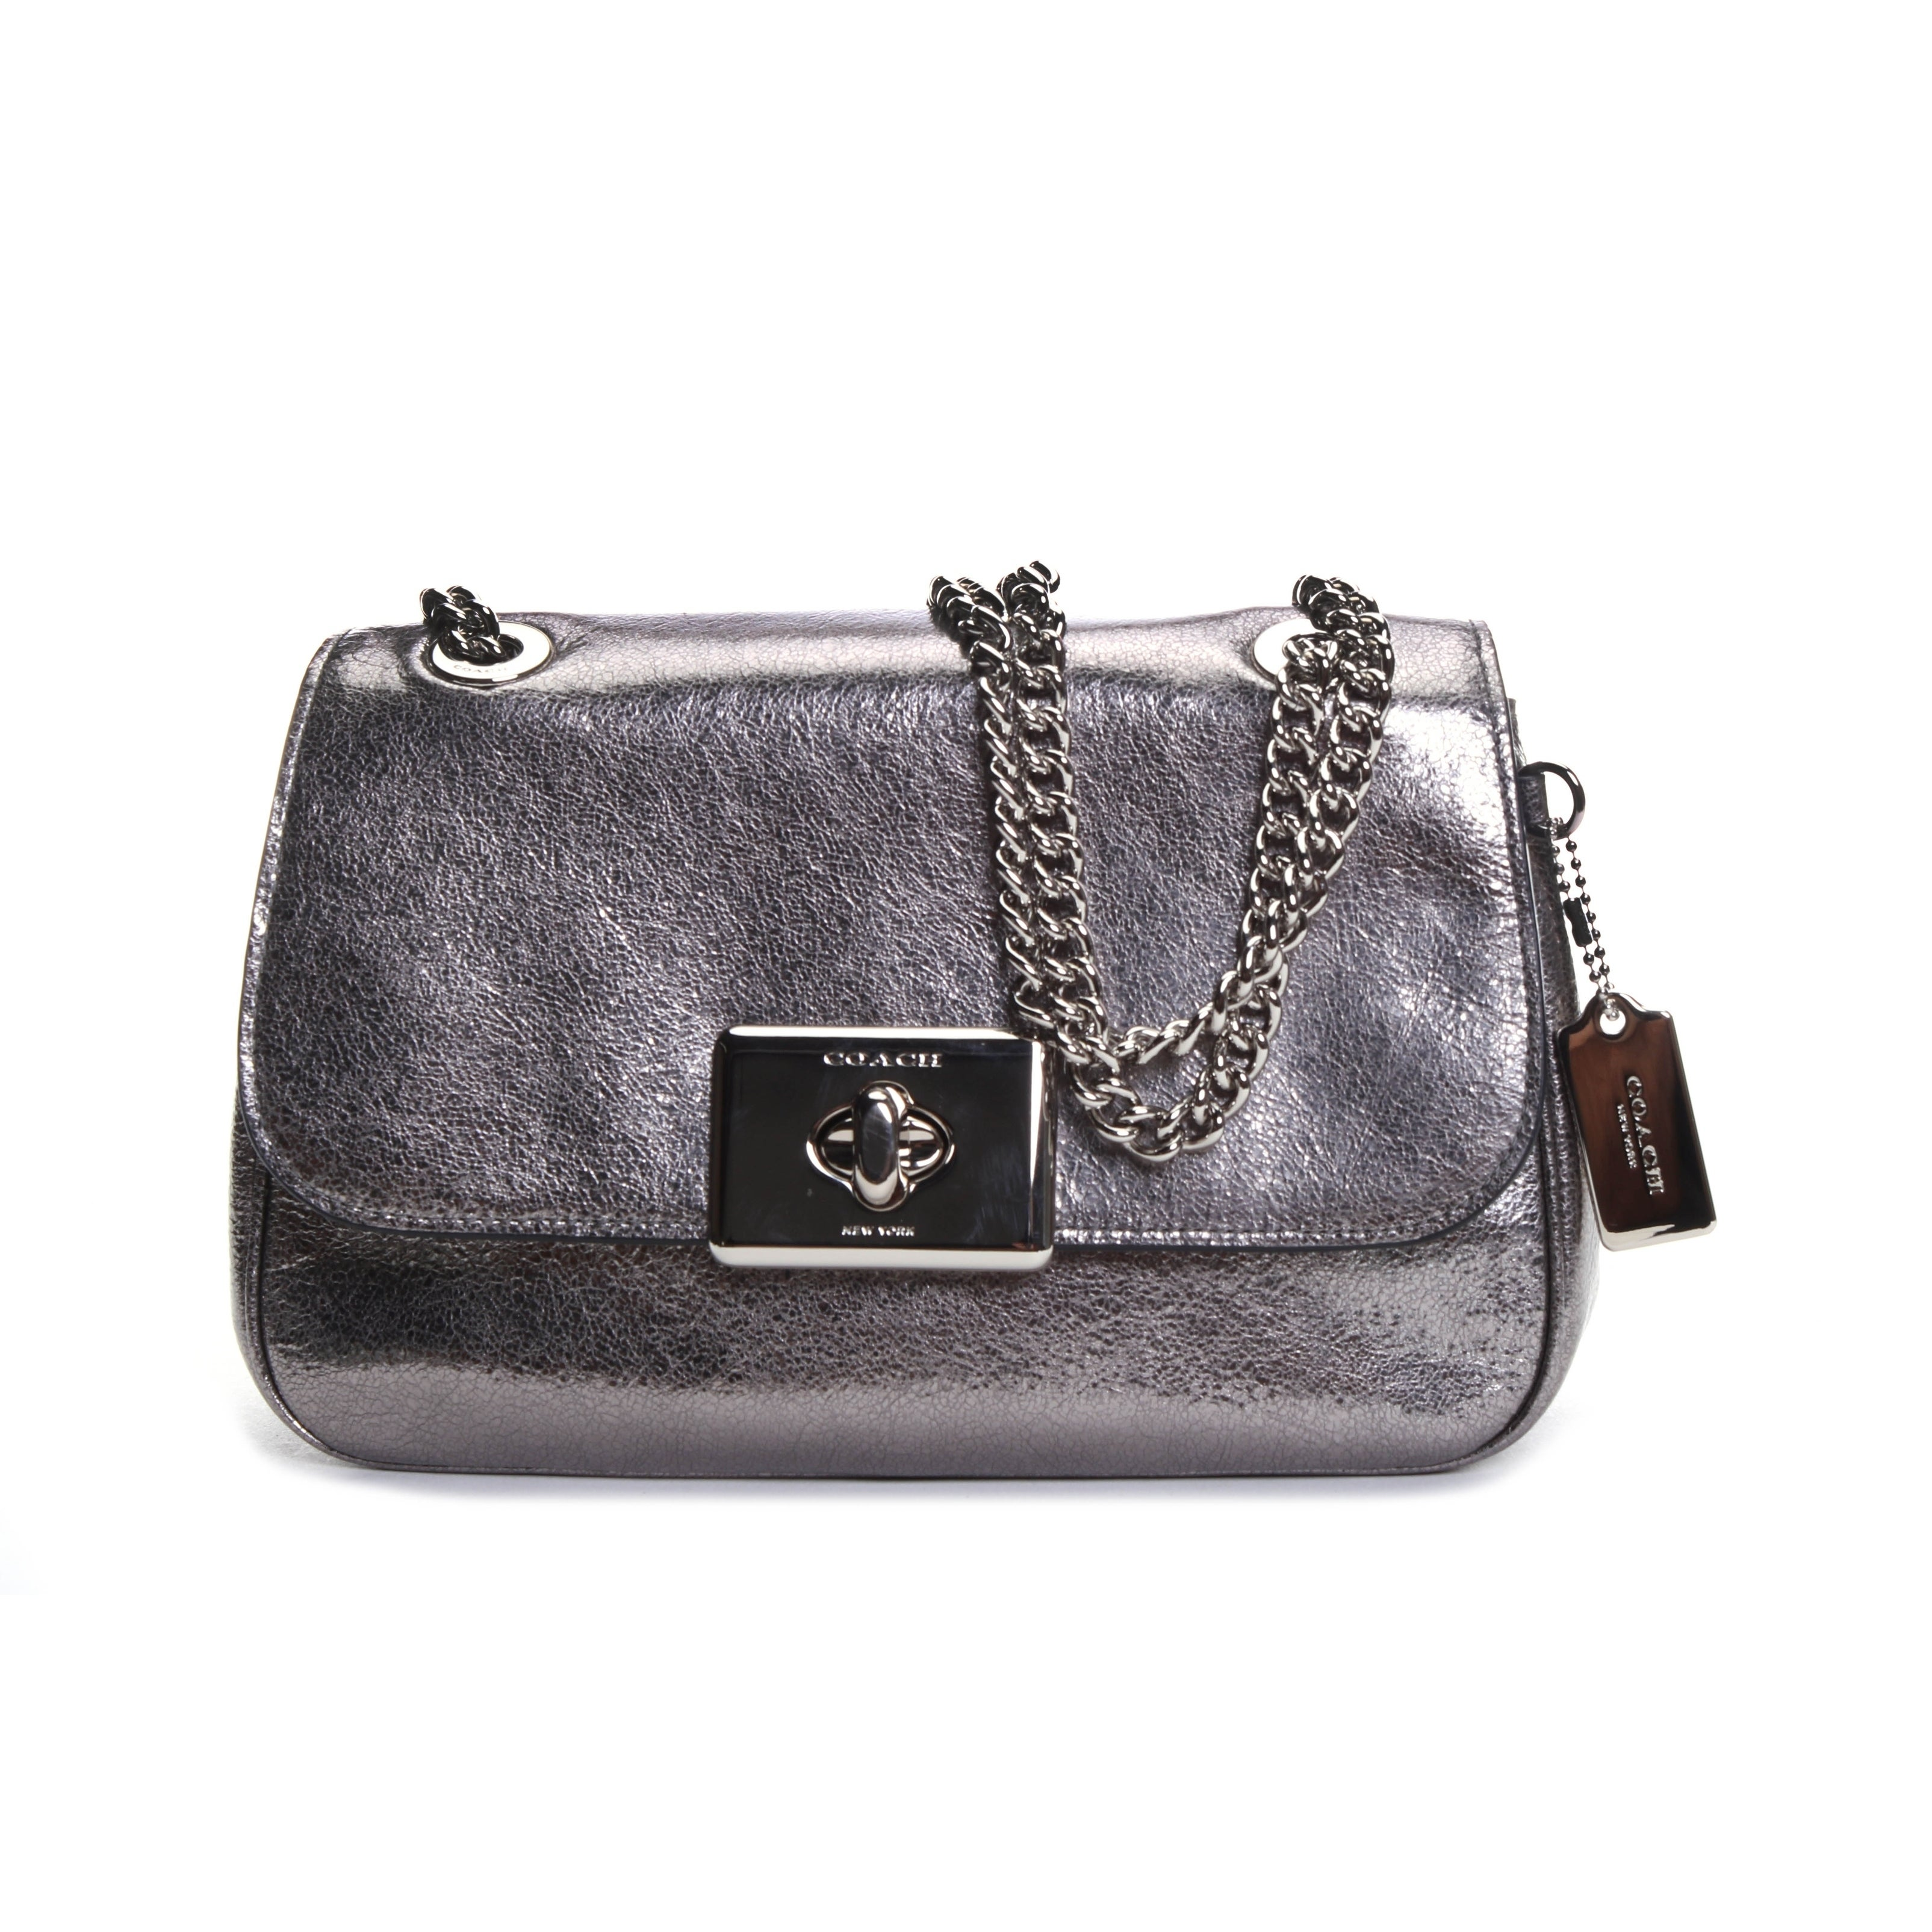 COACH CASSIDY Crinkle Metallic Leather Chain Shoulder Bag Crossbody F38937 Clothing, Shoes & Accessories